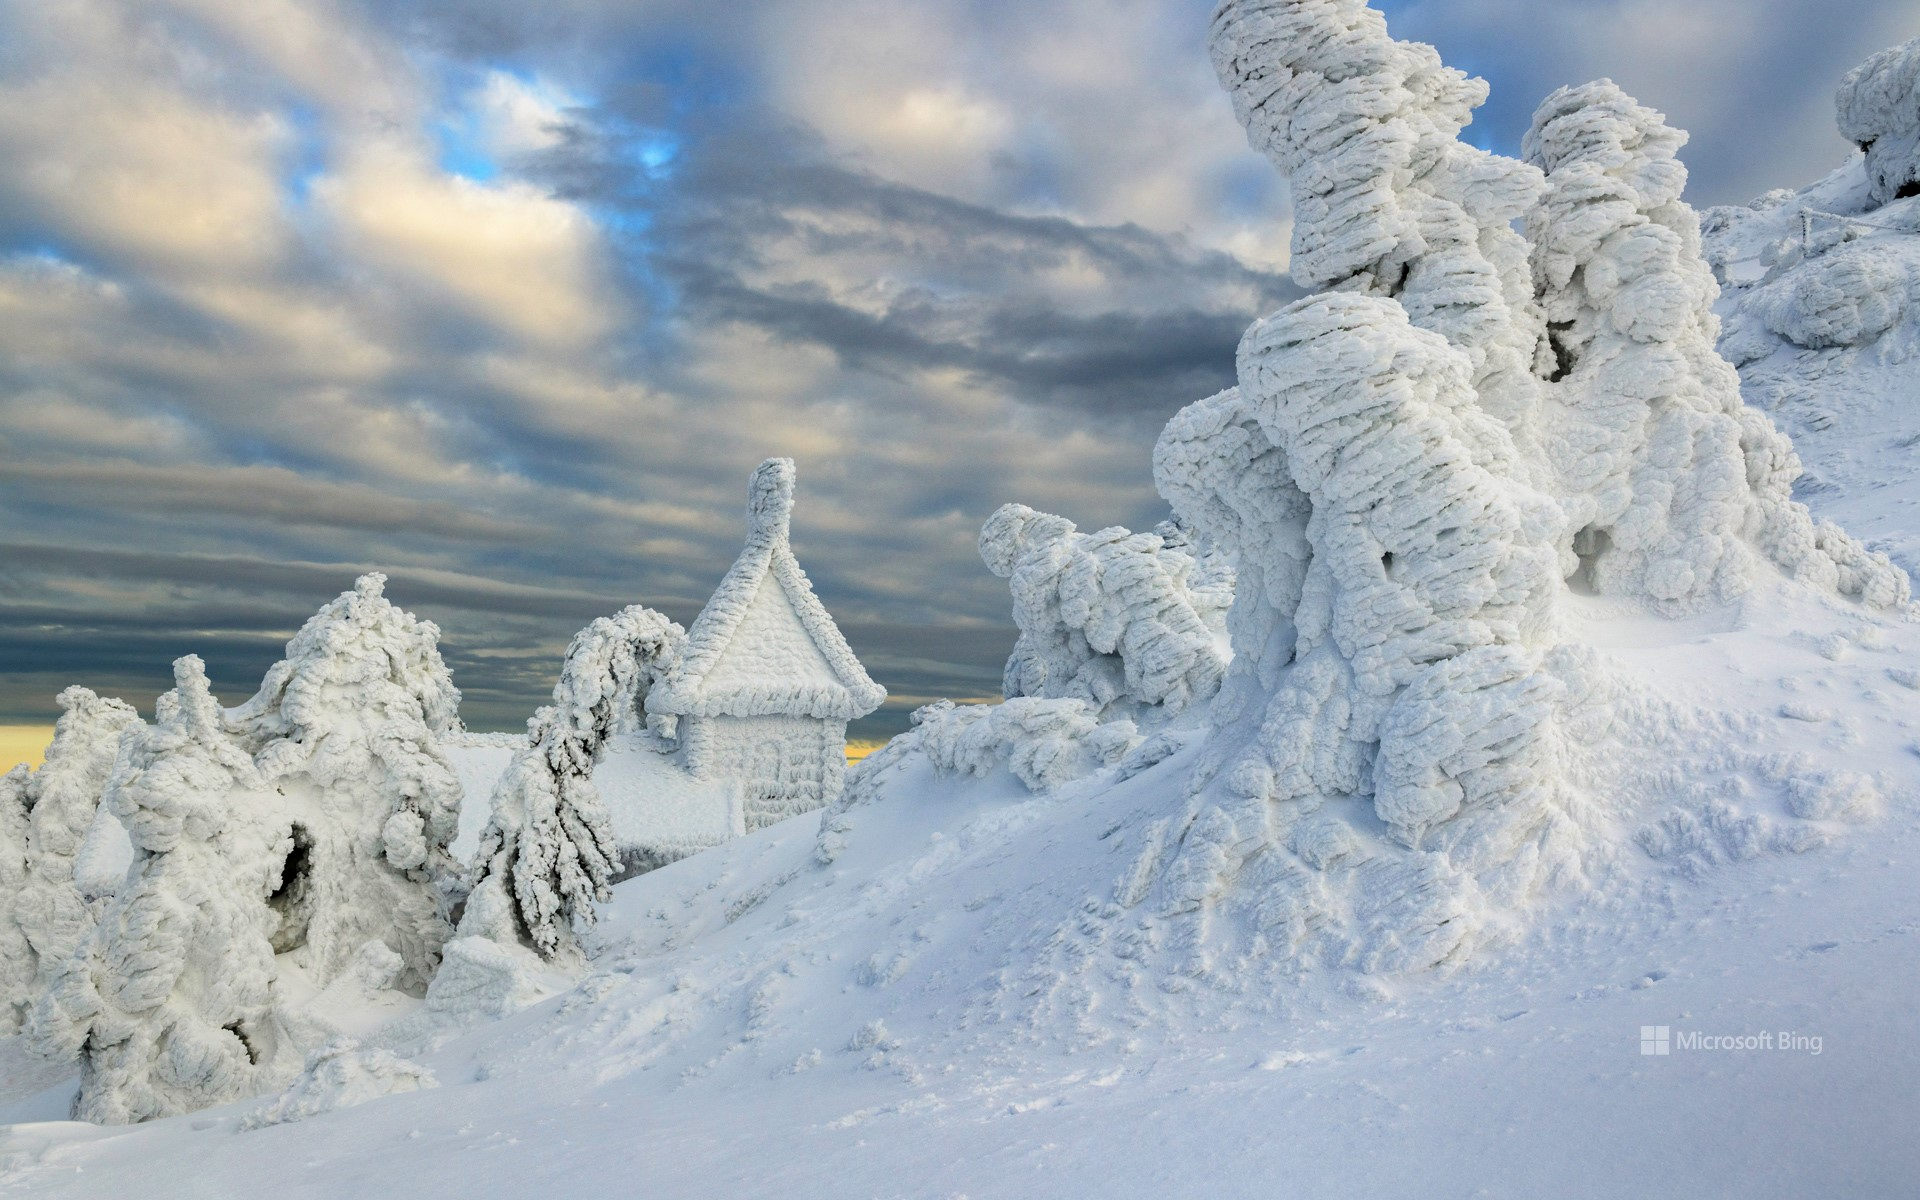 Snowed in Arber Chapel on the Großer Arber, Lower Bavaria, Bavaria